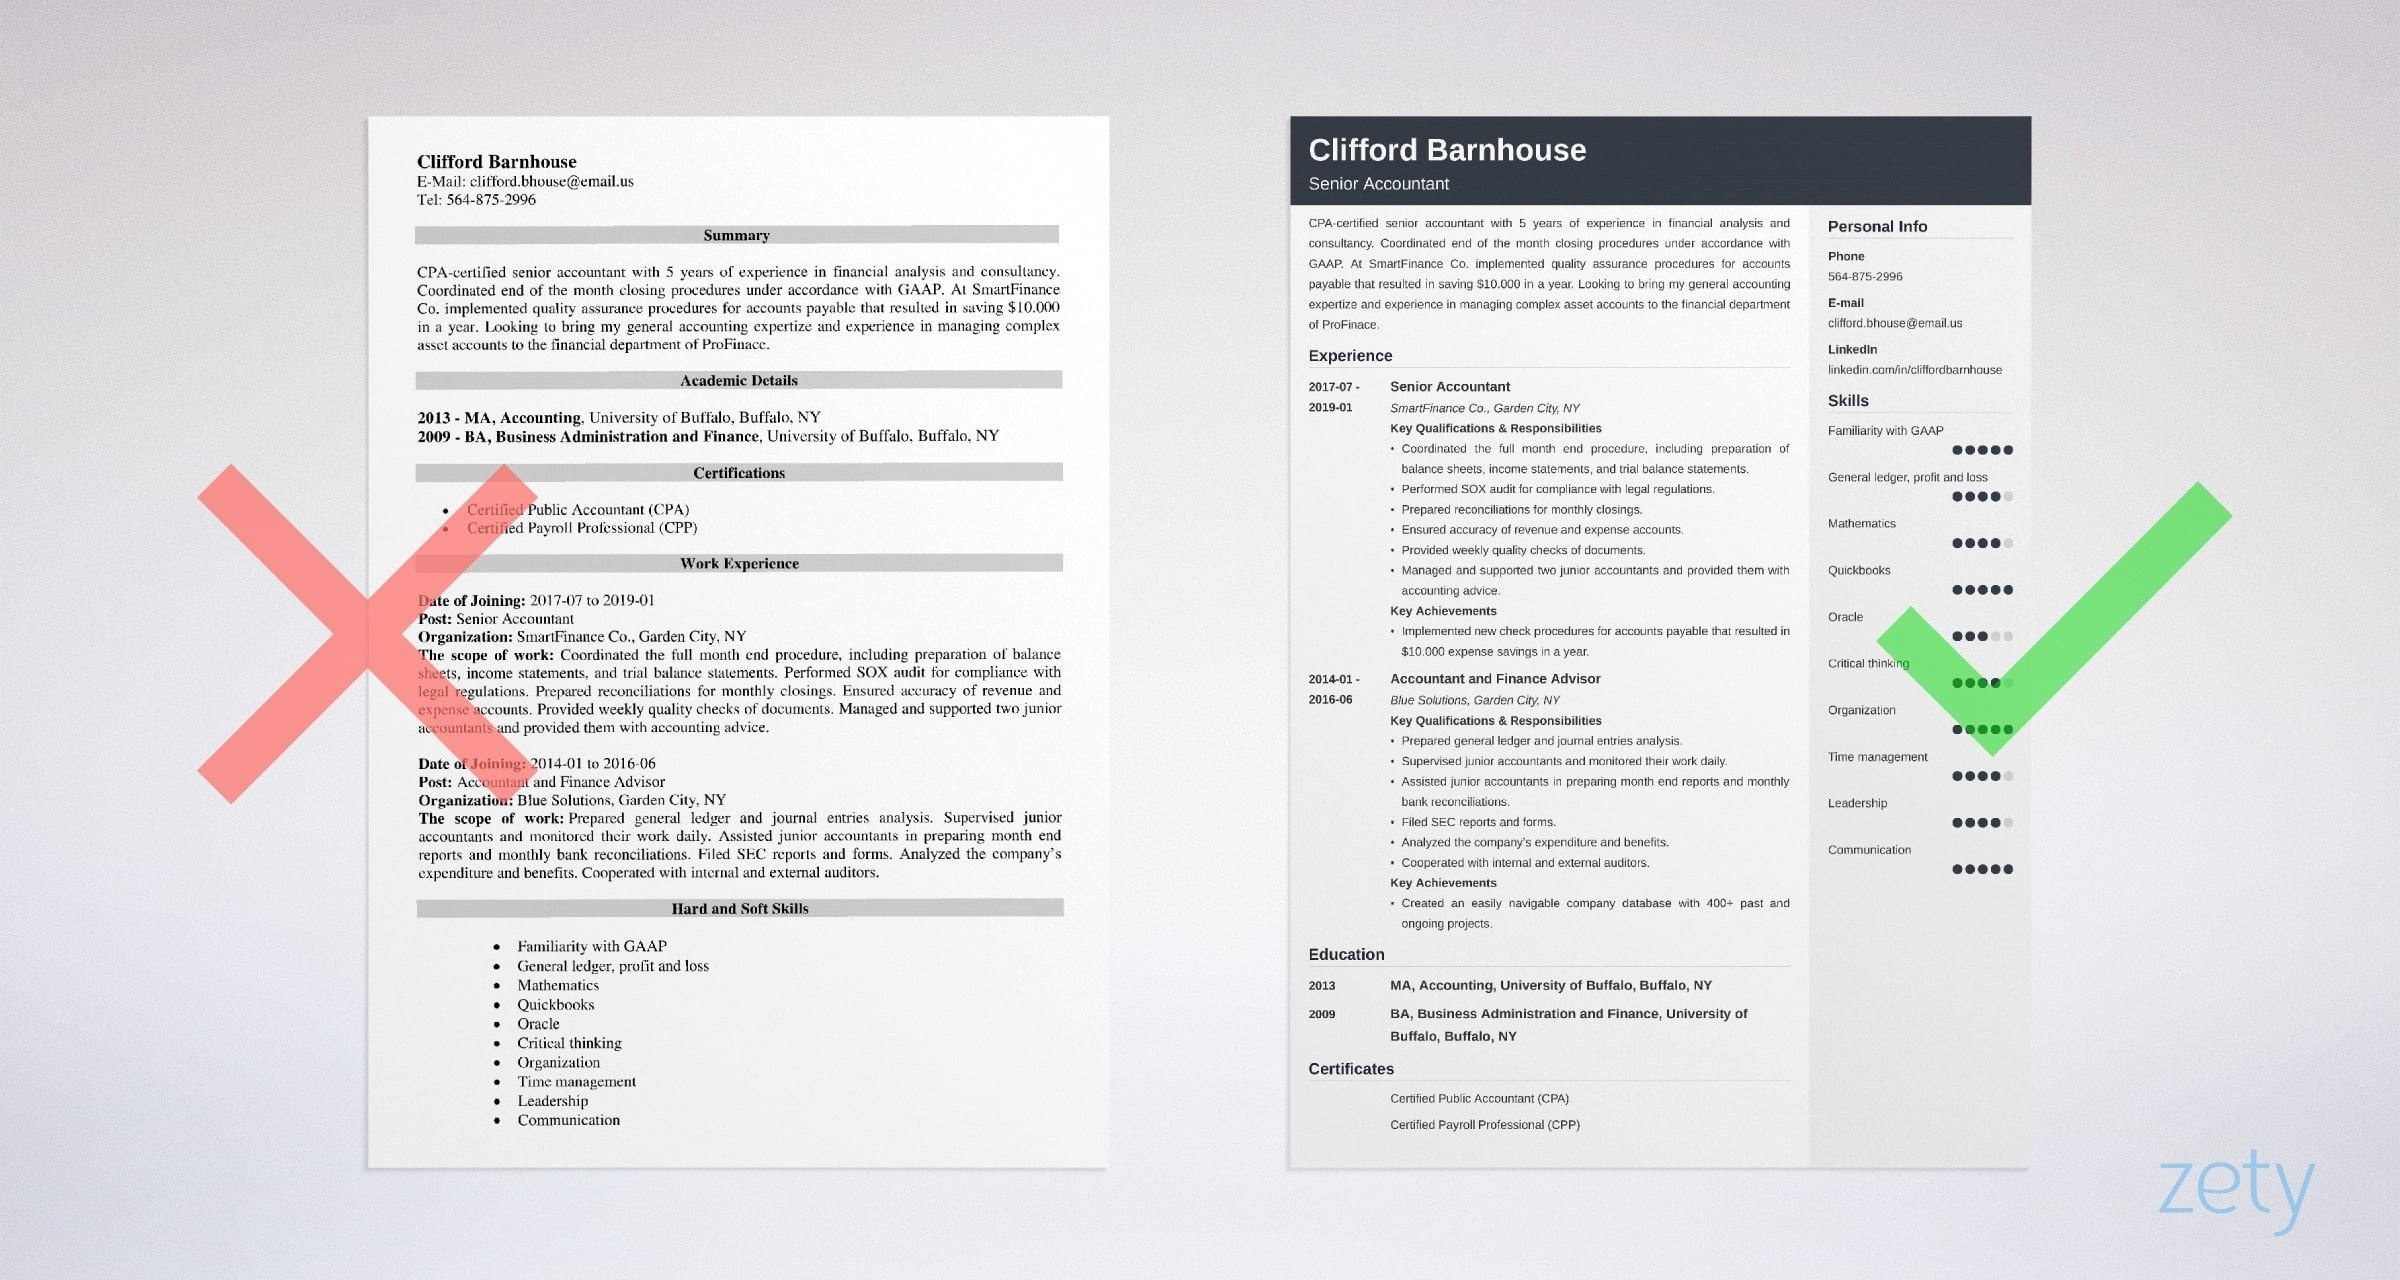 senior accountant resume sample guide tips staff example nfl cheerleader due diligence Resume Senior Staff Accountant Resume Sample